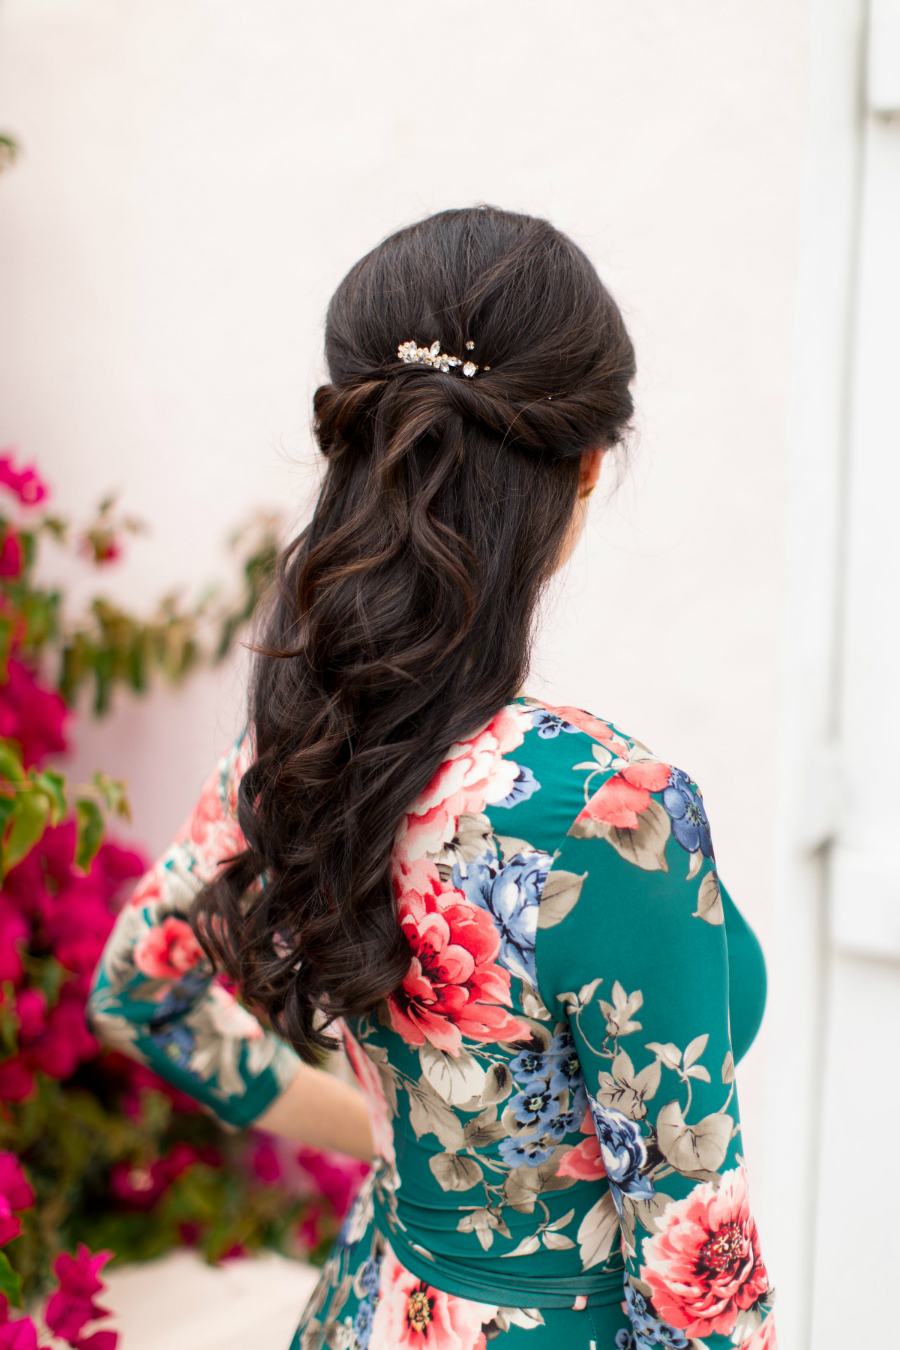 Hairstyle Tutorial - Gorgeous Half-up Half-down Hairstyle